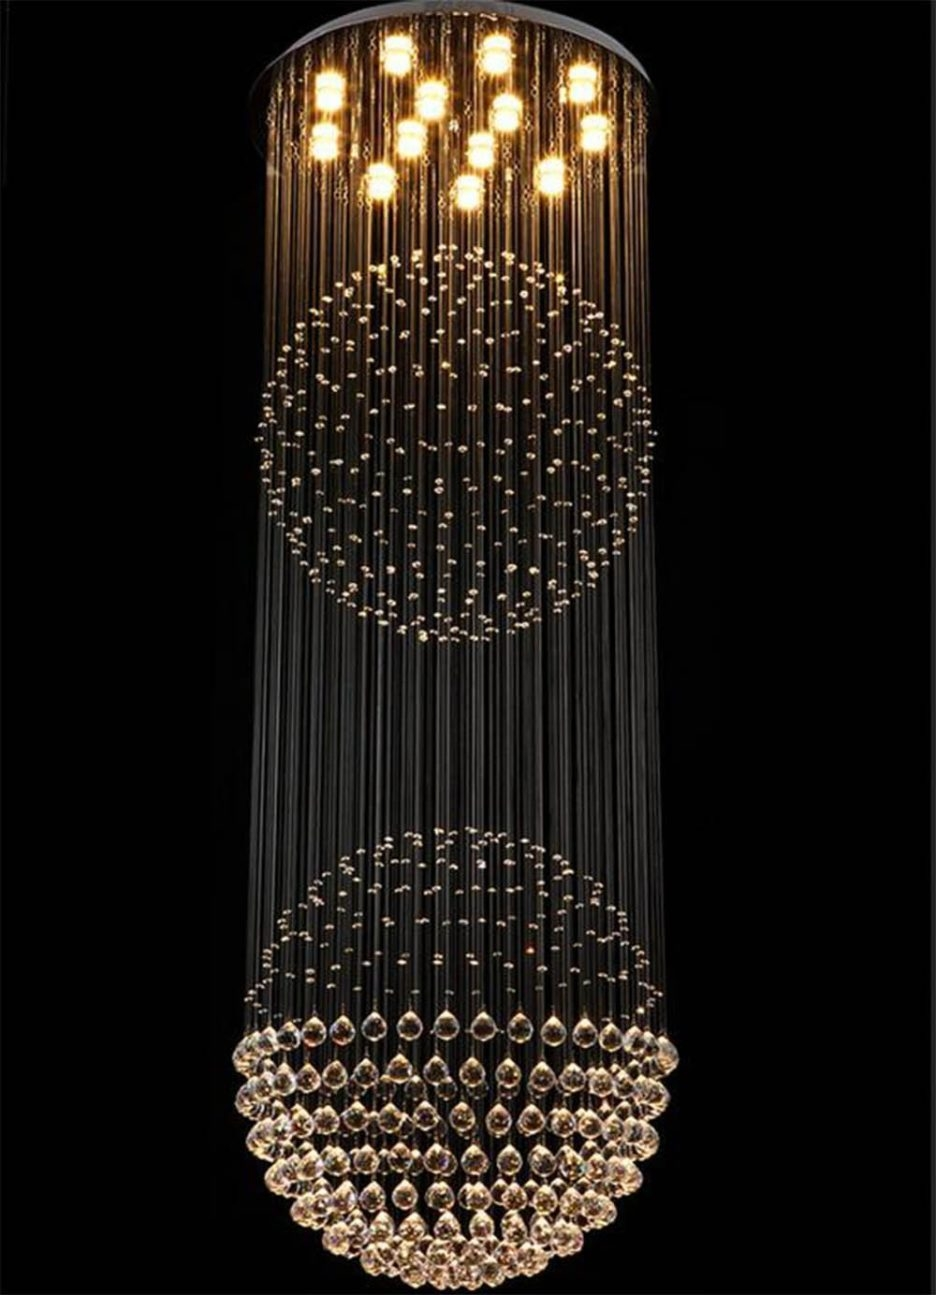 Luxurious Crystal Chandelier With Rain Drop And Two Large Globe Regarding Hallway Chandeliers (Image 21 of 25)